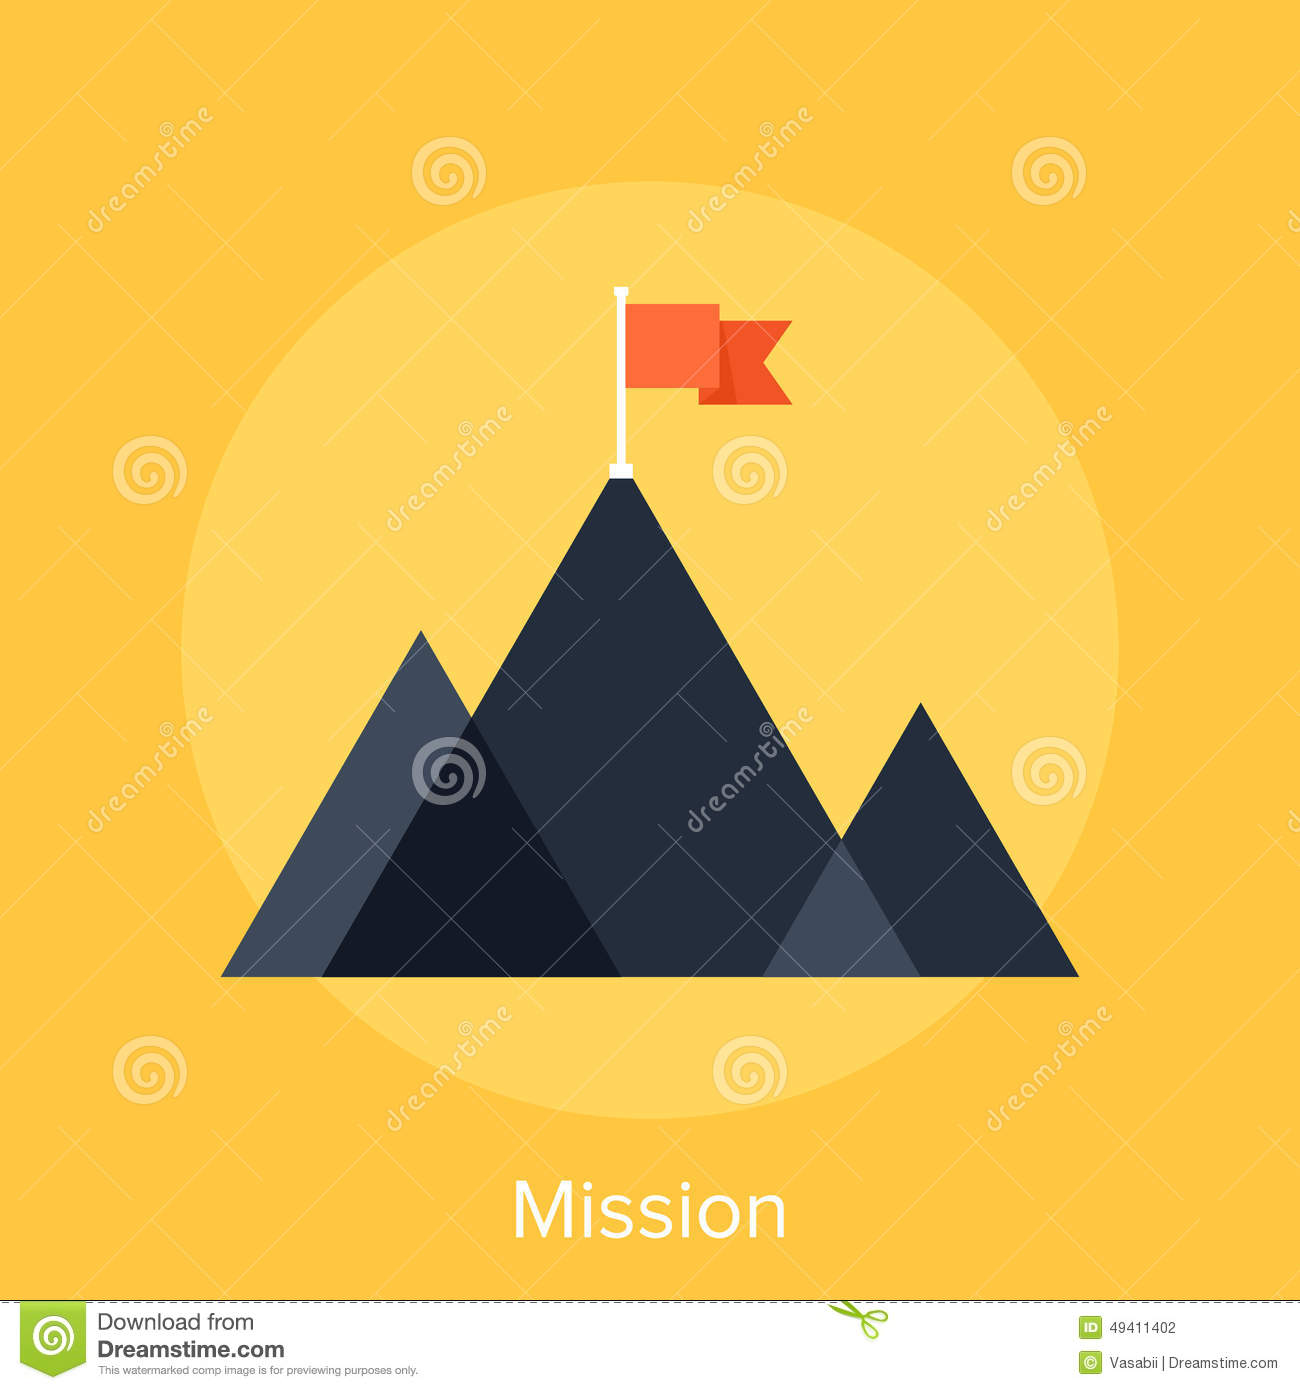 Download Mission stockfoto. Bild von mission, strategie, berg - 49411402